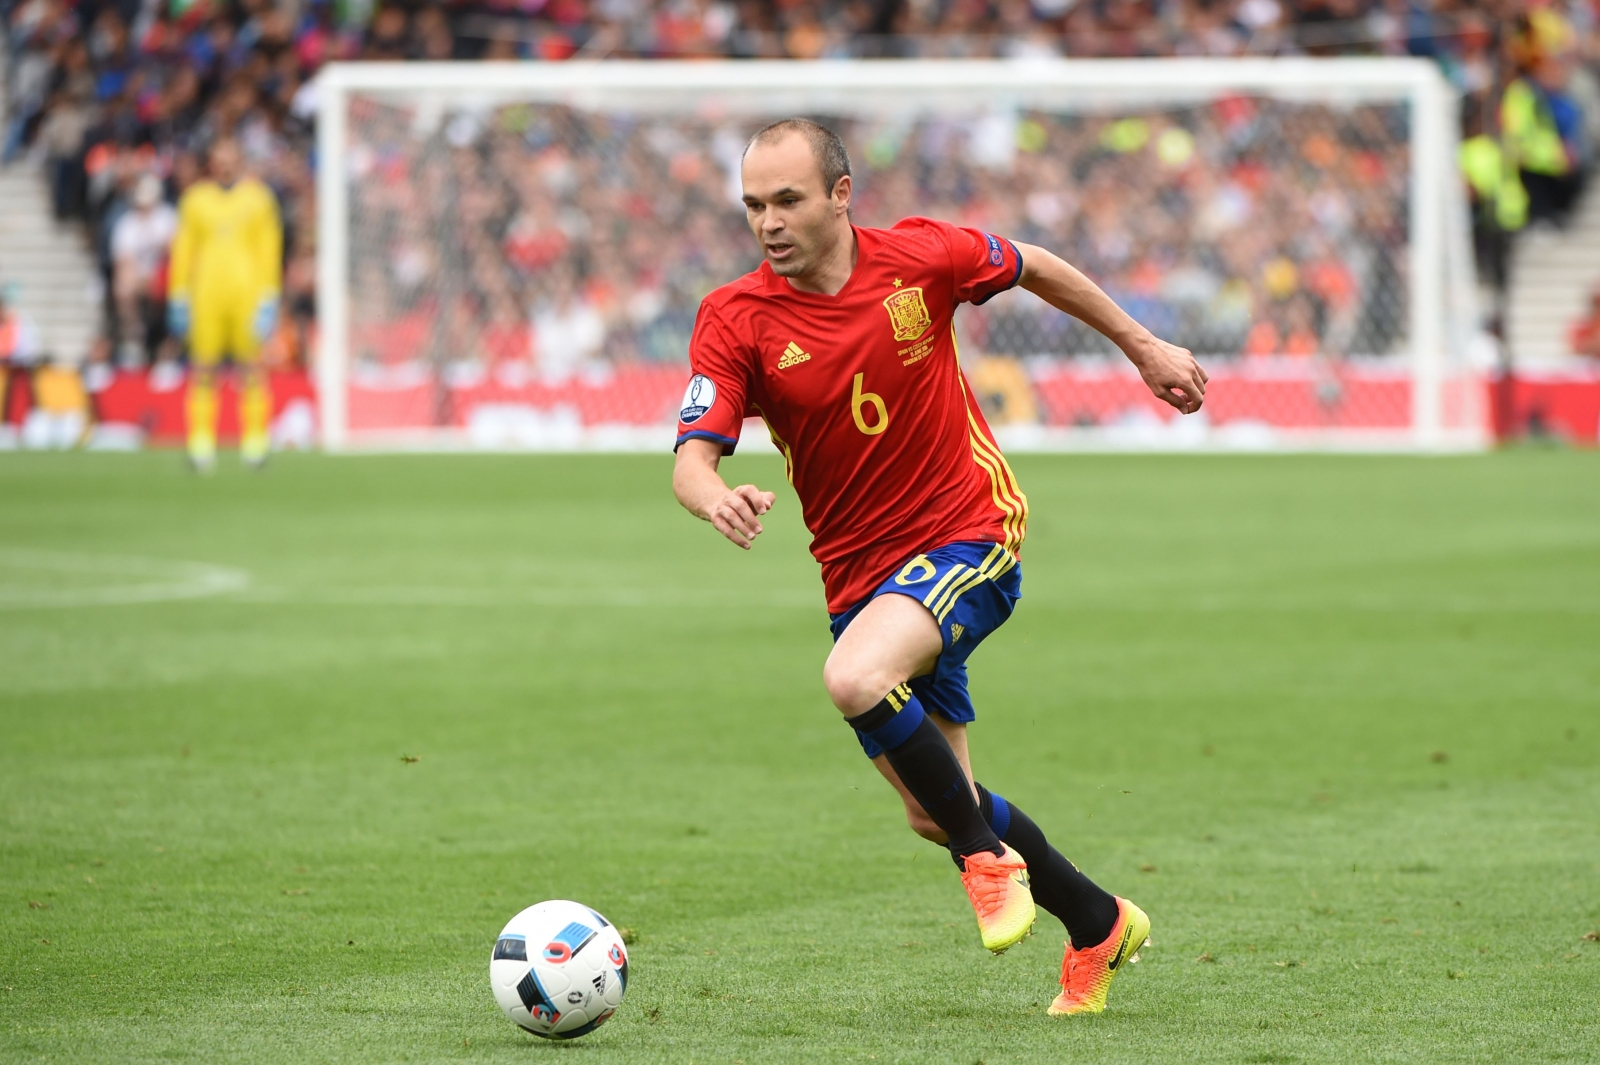 Iniesta dominated the first half